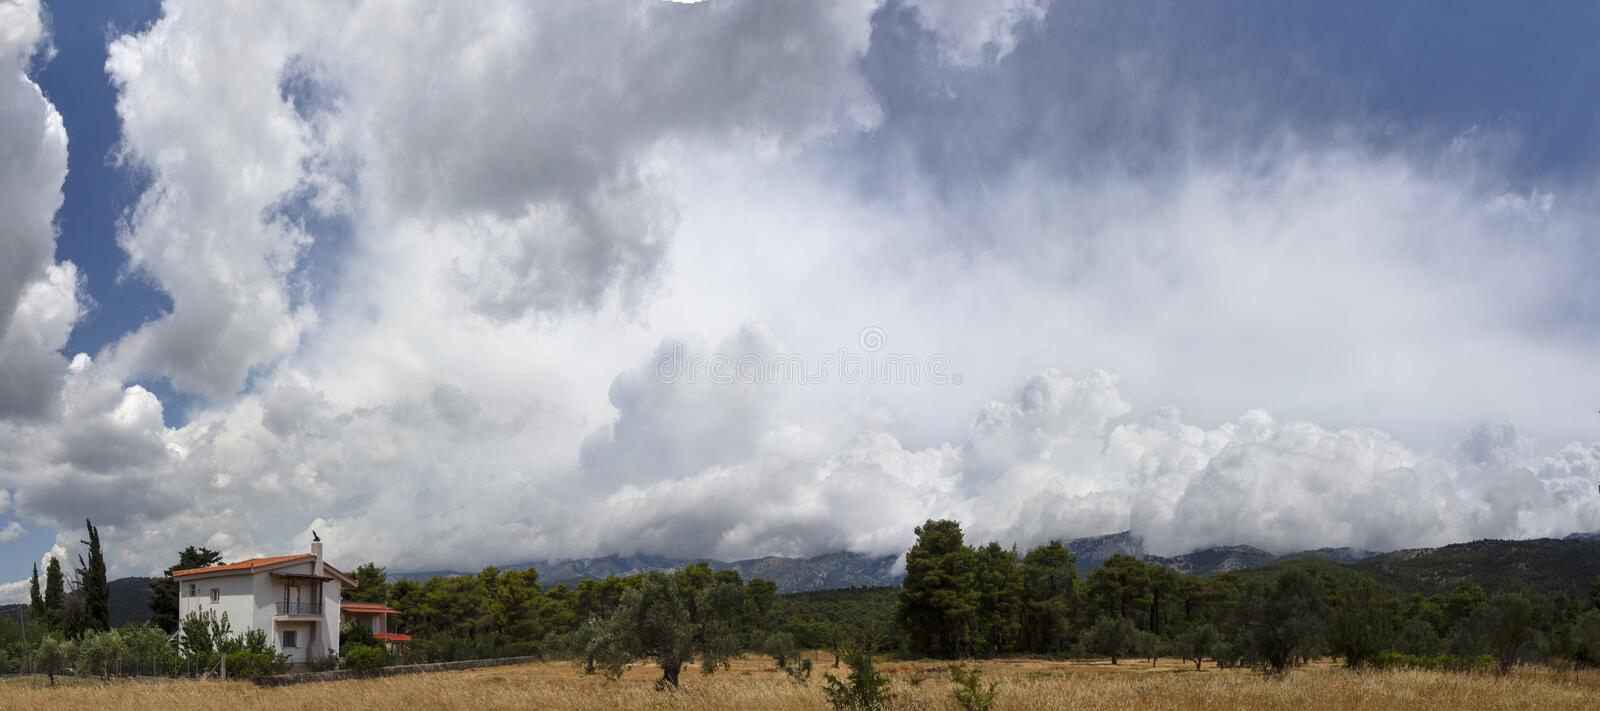 Giant Cumulus clouds before the approaching summer storm in a village on the Greek island of Evia stock image